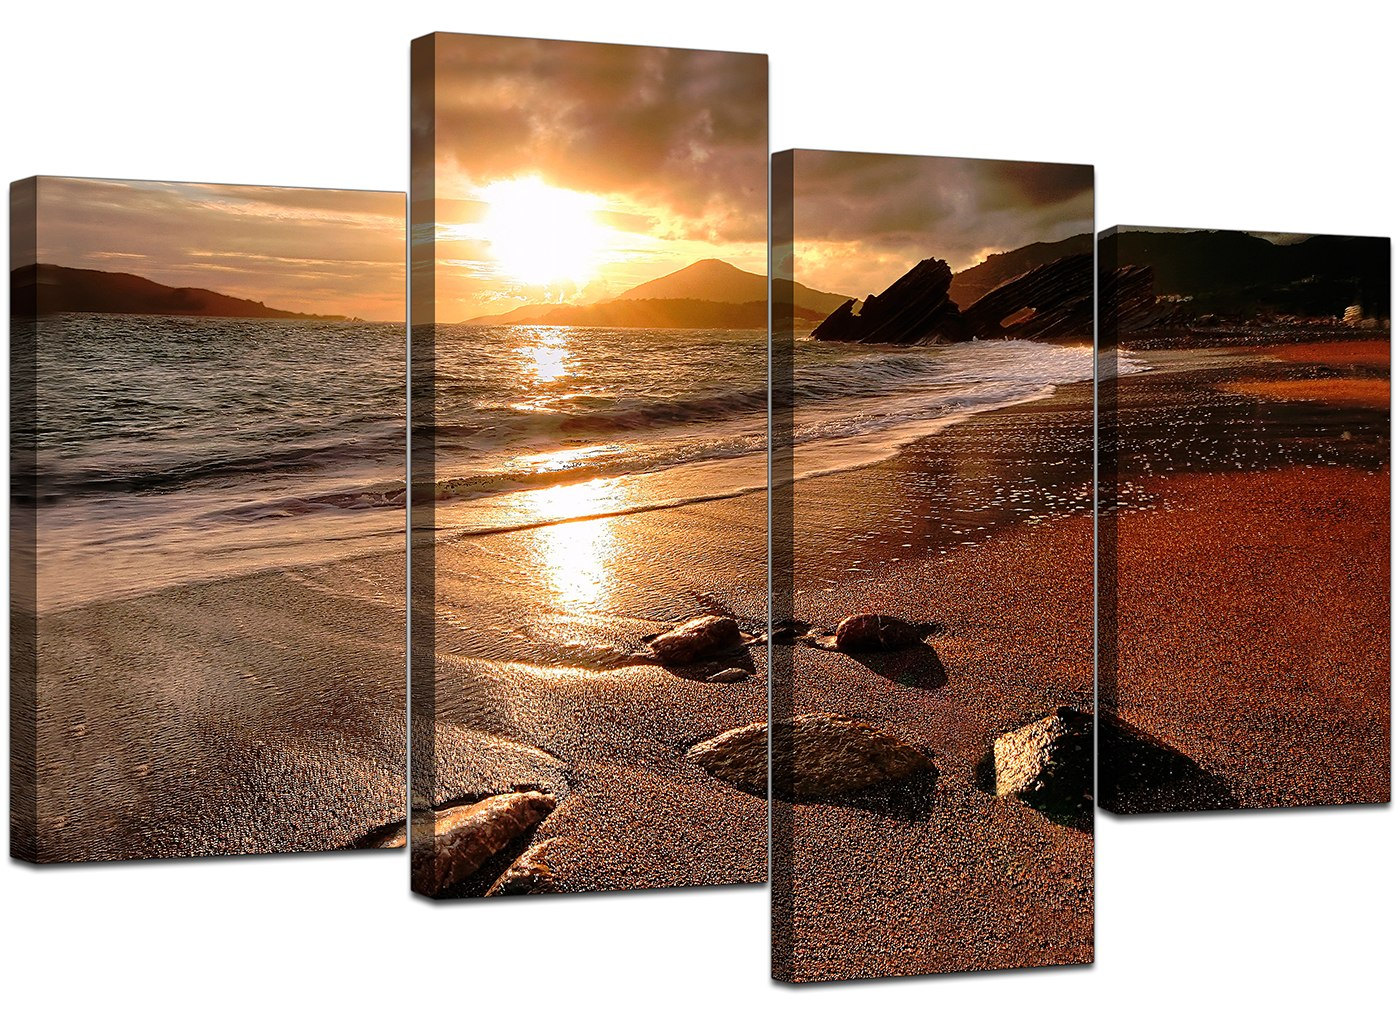 Large sunset beach canvas wall art pictures living room prints xl 4131 ebay - Living room canvas art ...